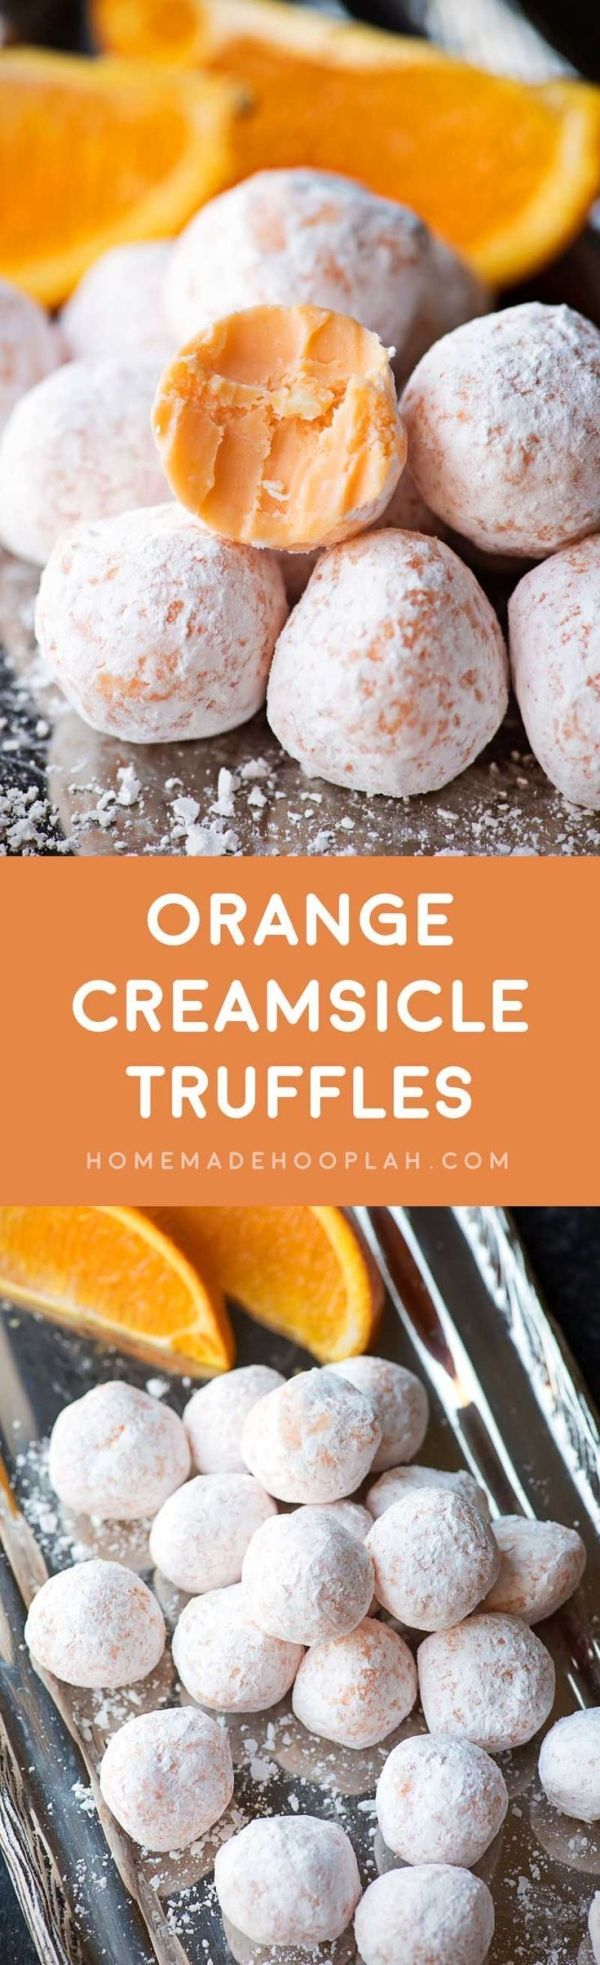 Orange Creamsicle Truffles! Delicious orange truffles that will remind you of all the creamsicle treats you had as a kid. Easy to make and a great snack for parties! | HomemadeHooplah.com by Carol's